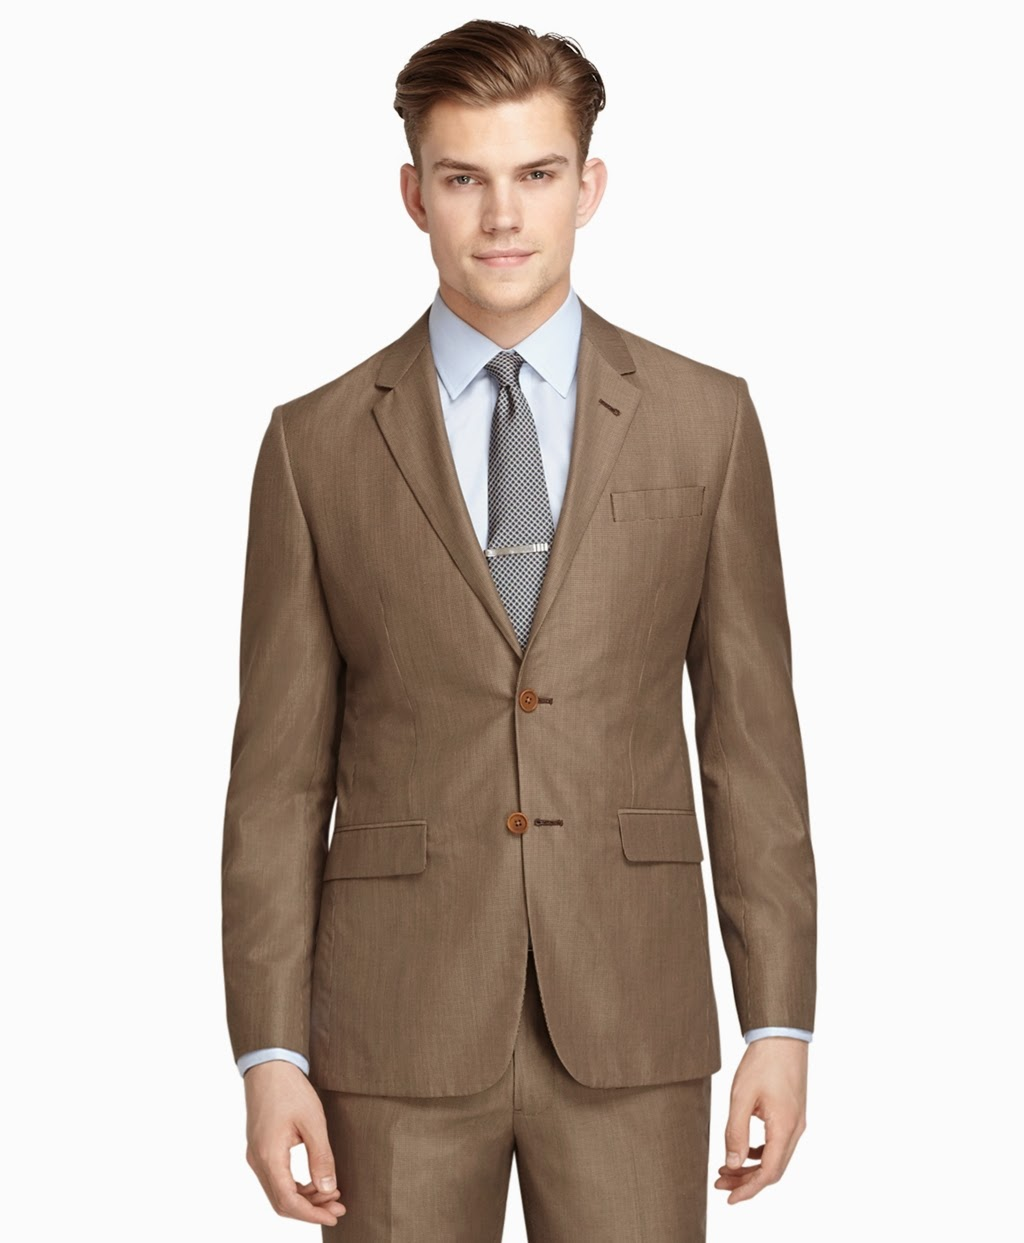 english cut how to press a suit